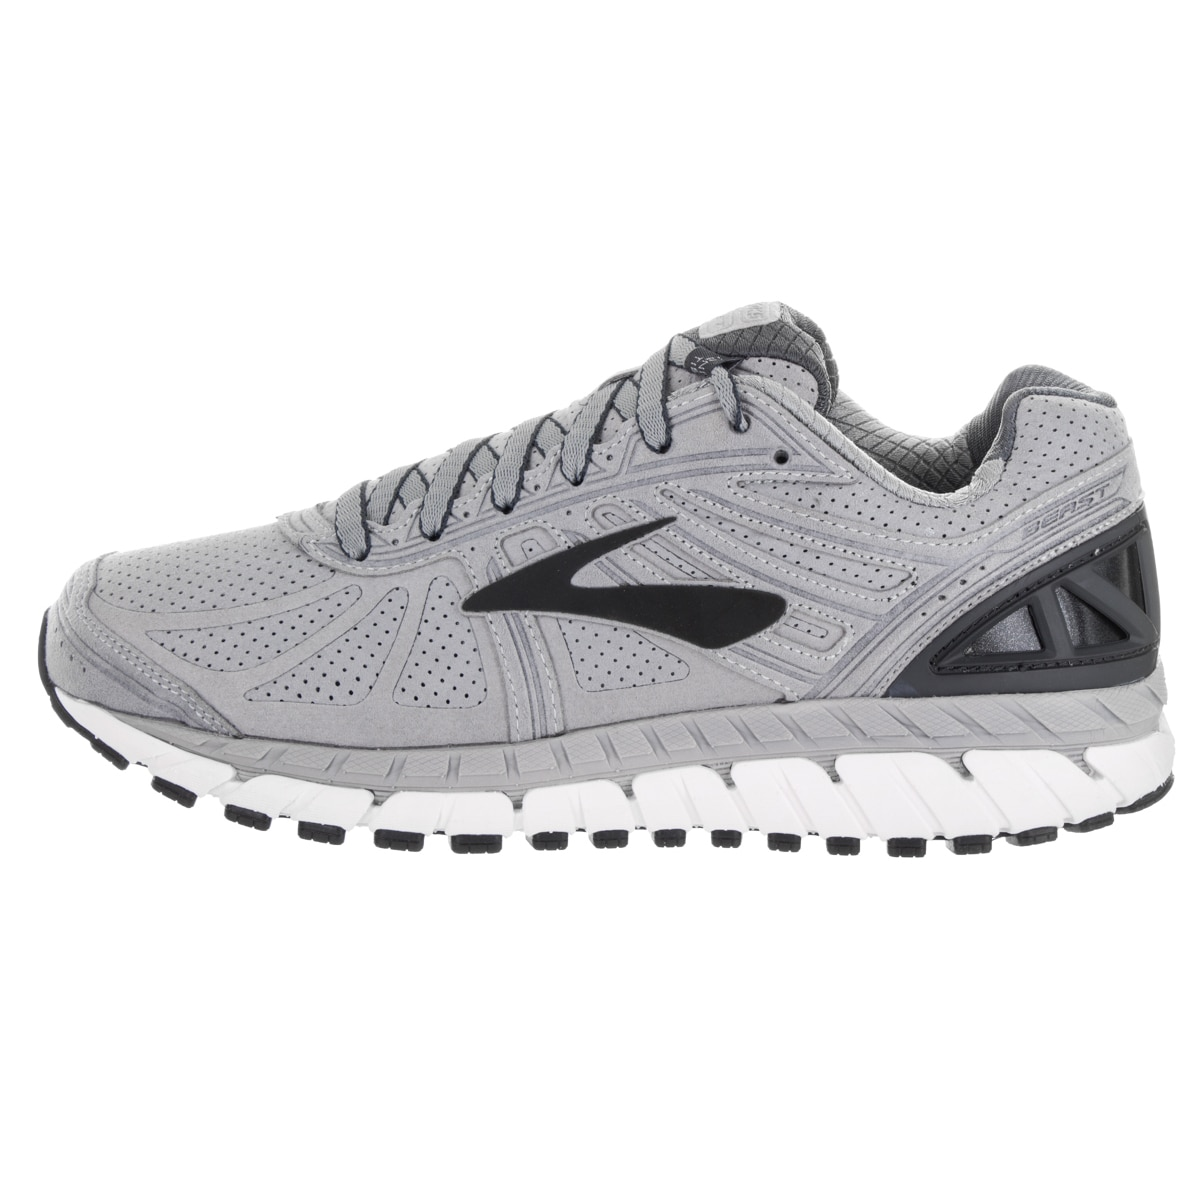 3b9824a6859 Shop Brooks Men s Beast  16 LE Silver Suede Running Shoes - Free Shipping  Today - Overstock - 13620275